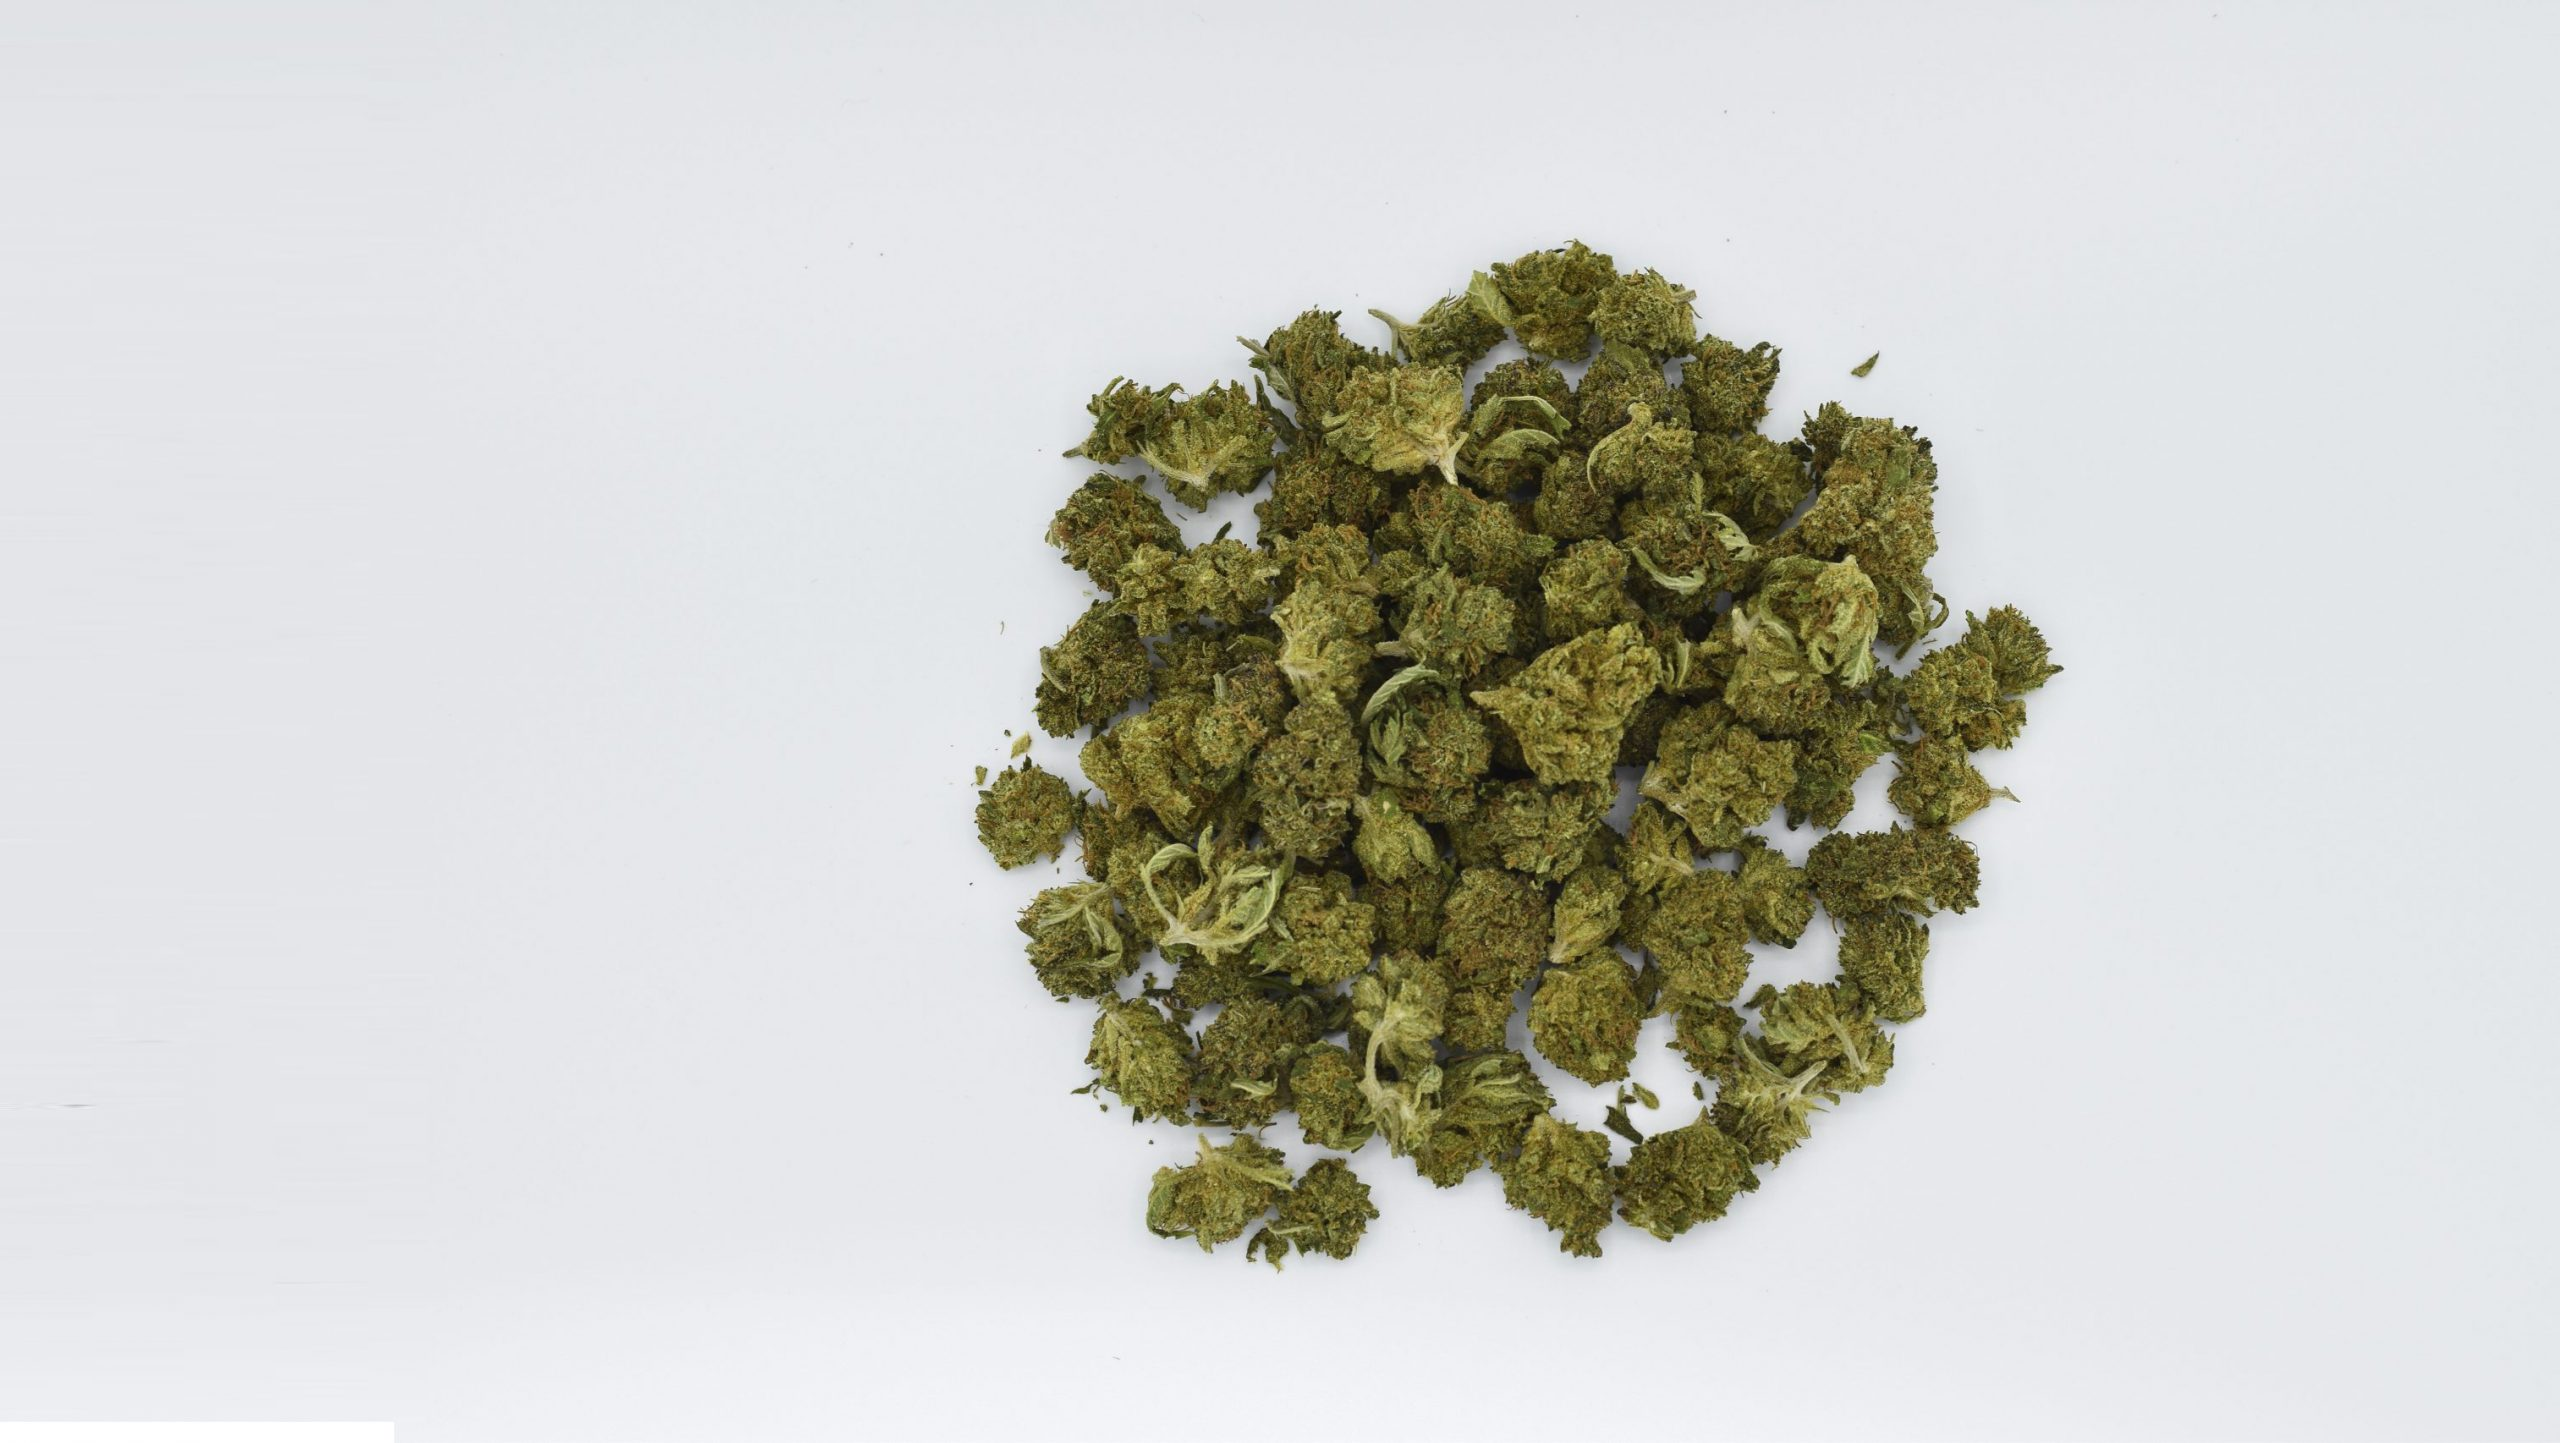 Bulk CBD Flower for Sale - Casco Bay Hemp Retail, Wholesale & Private/White Label CBD Services in Maine